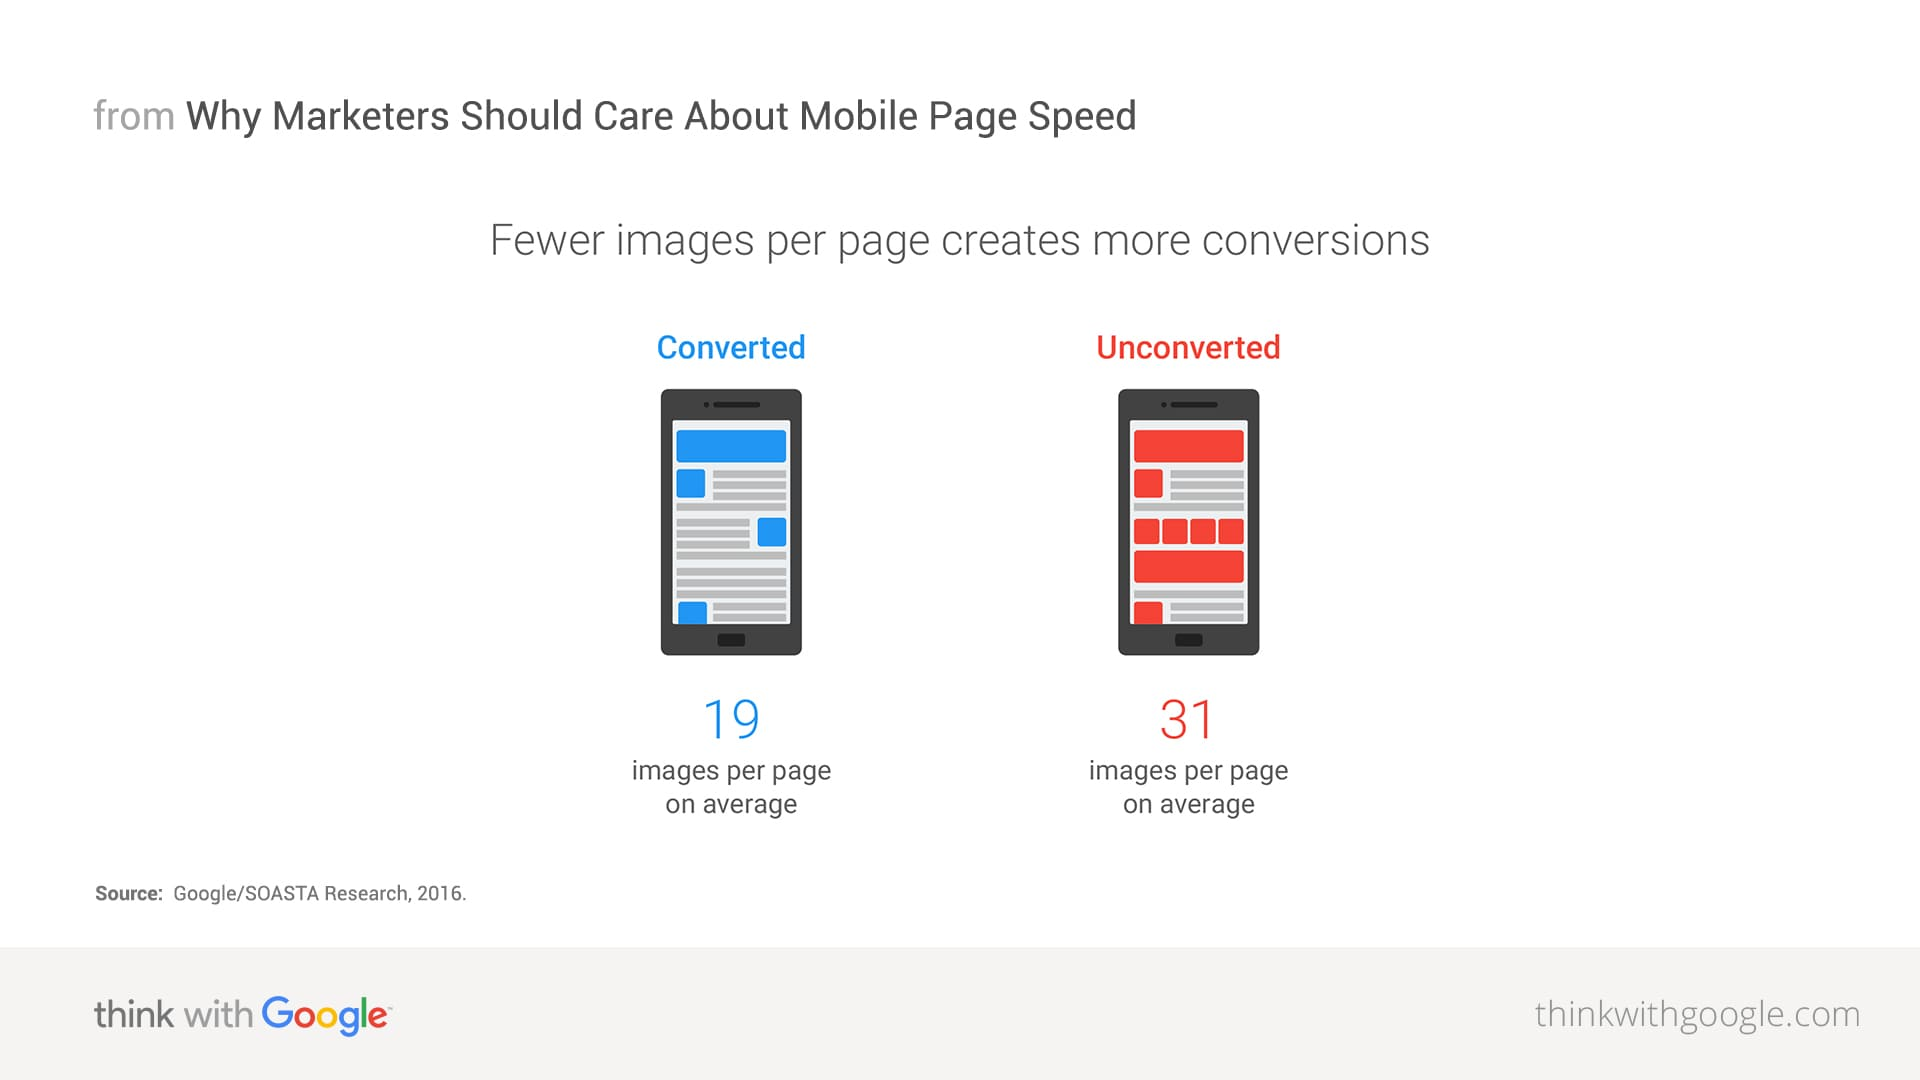 Number of images per page influence conversions